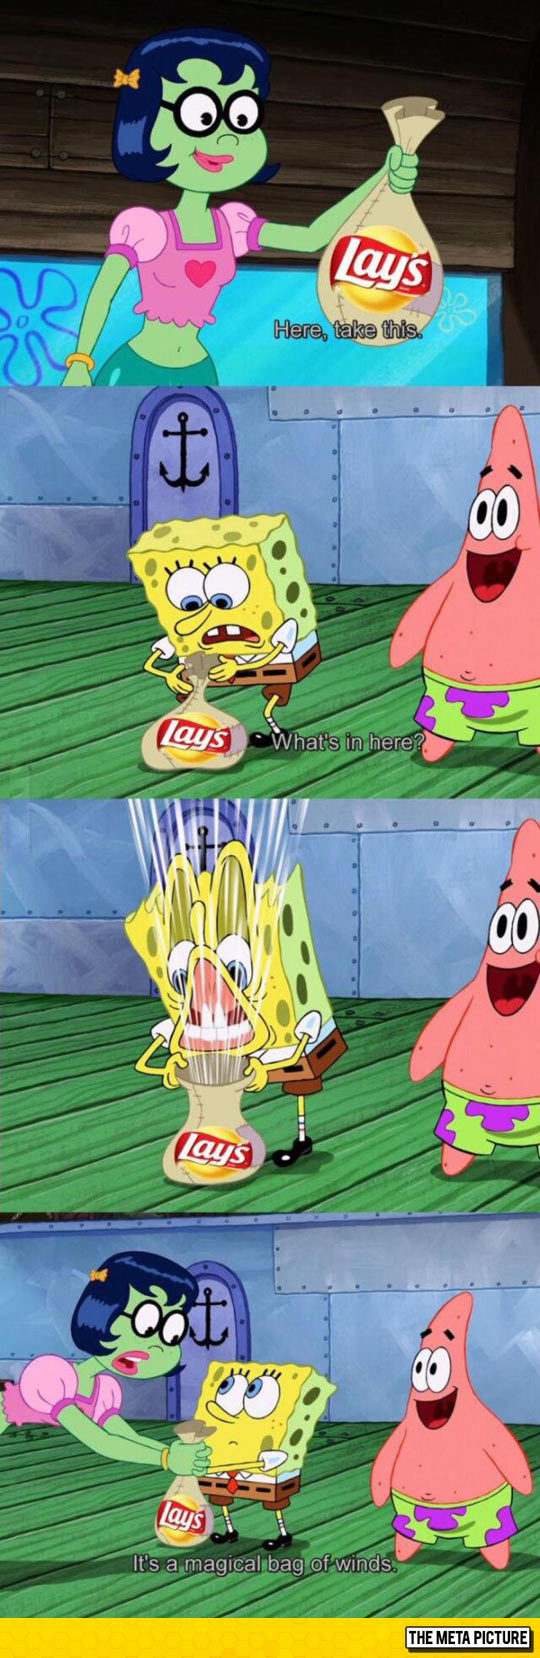 I Looked At Patrick The Entire Time And Can't Stop Laughing